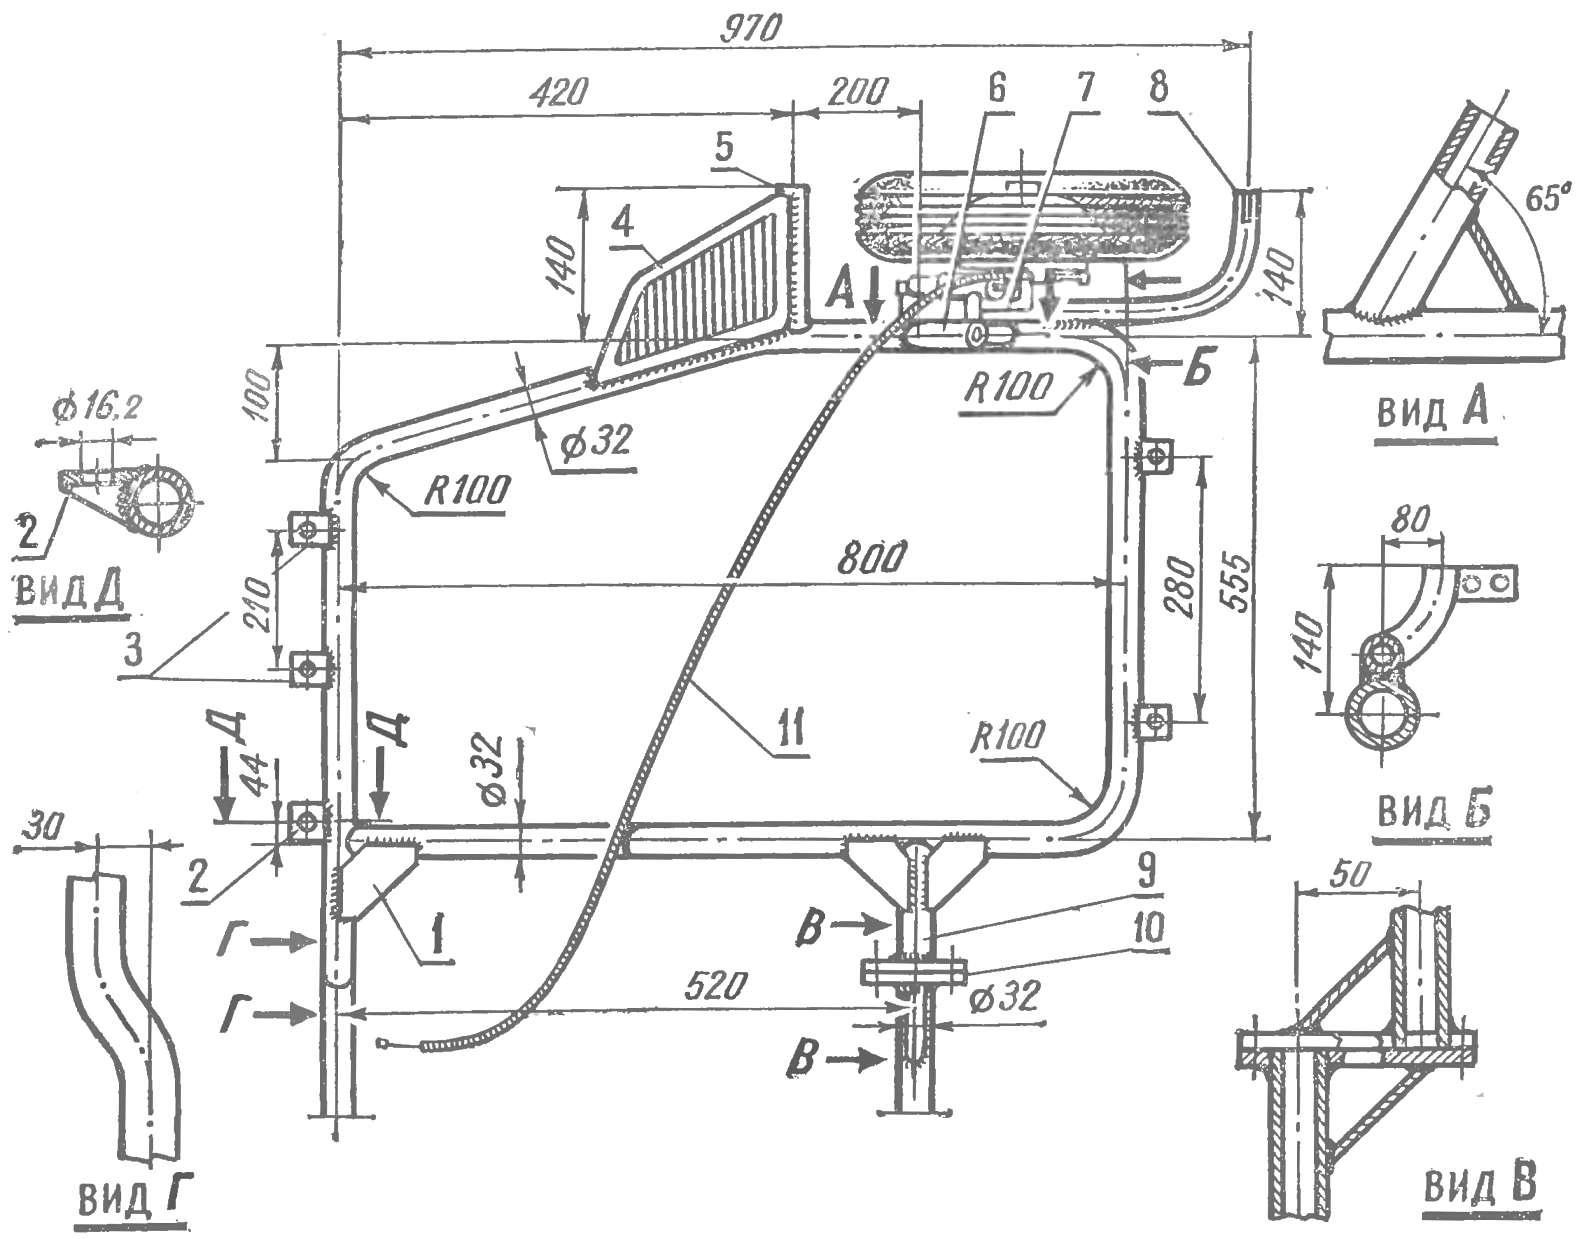 Fig. 5. The frame of the trailer